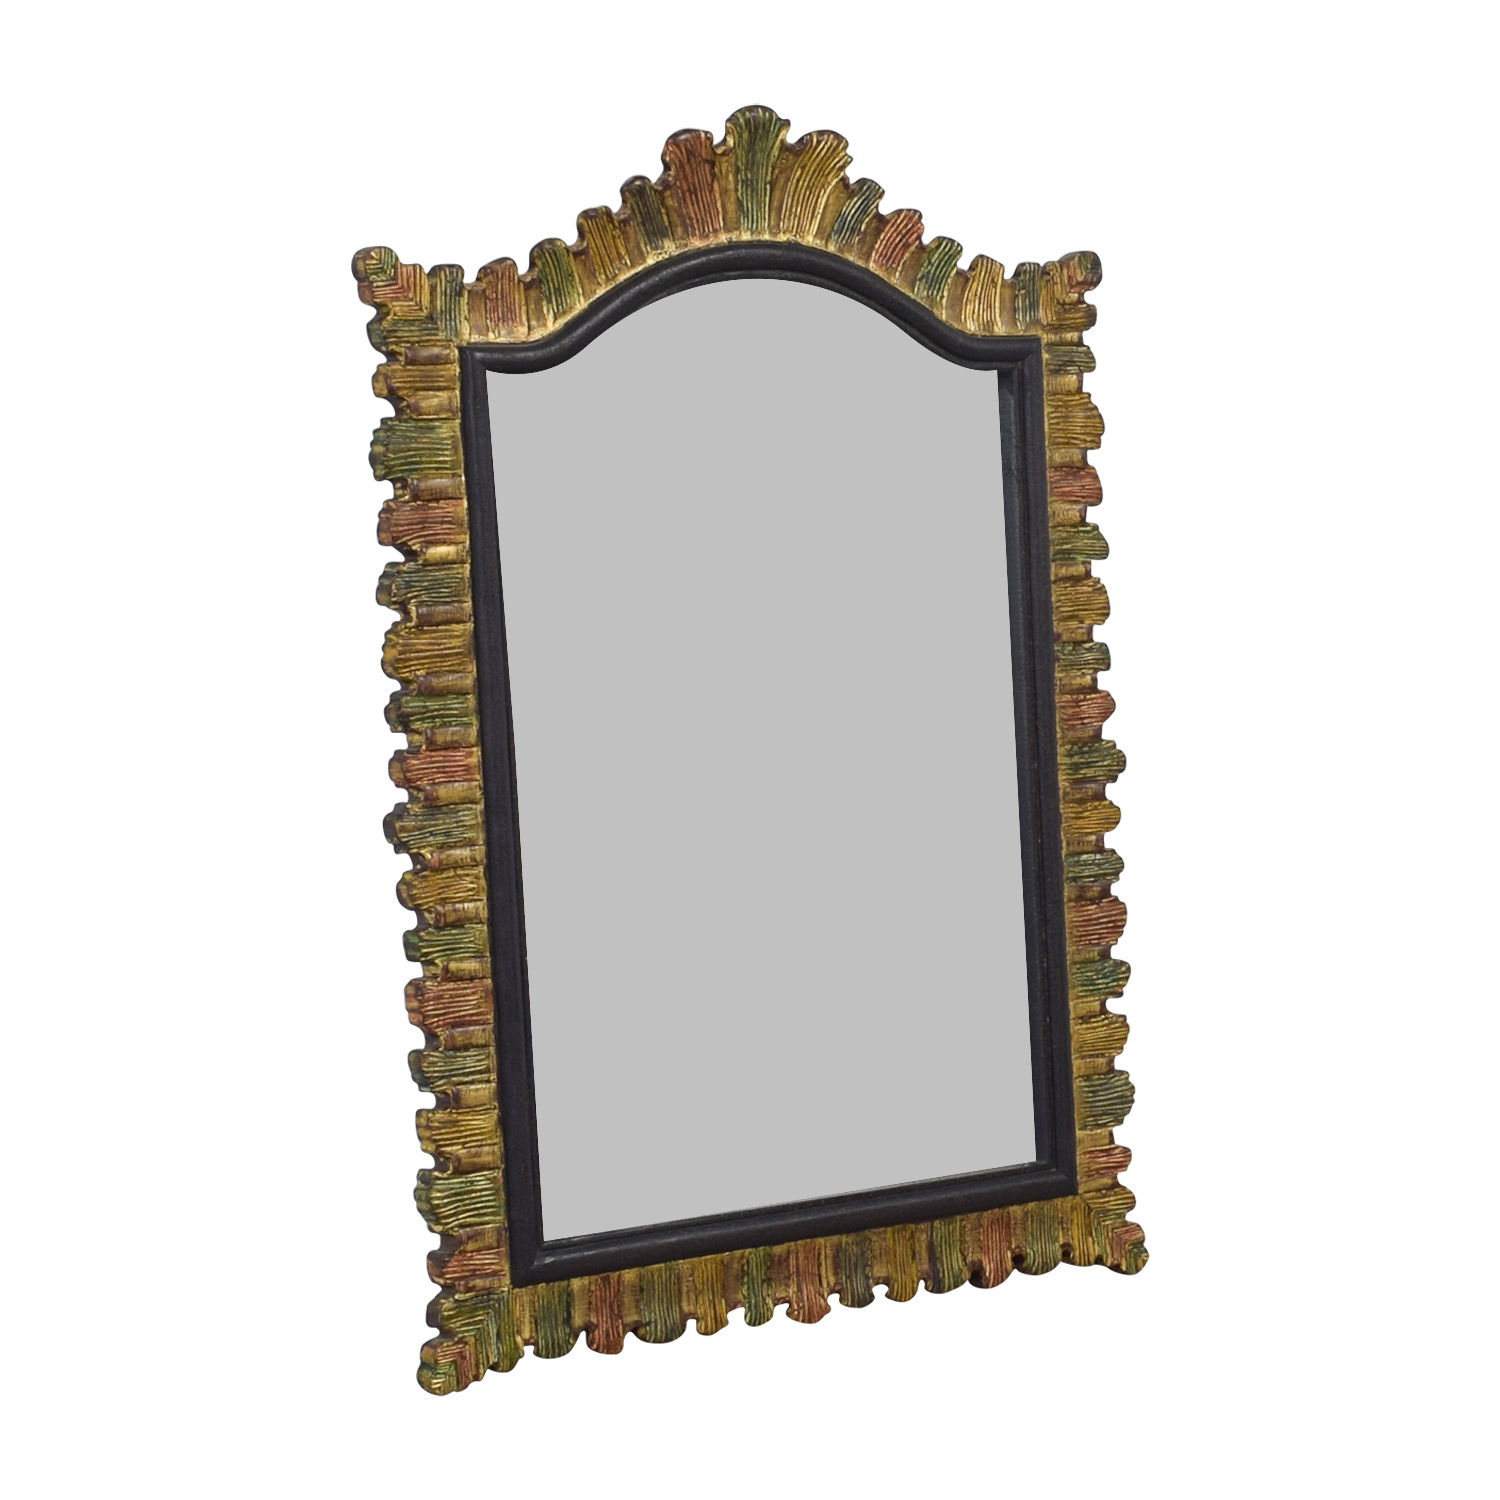 Thomas Fetherston Thomas Fetherston Multi-Colored Gold Framed Mirror discount